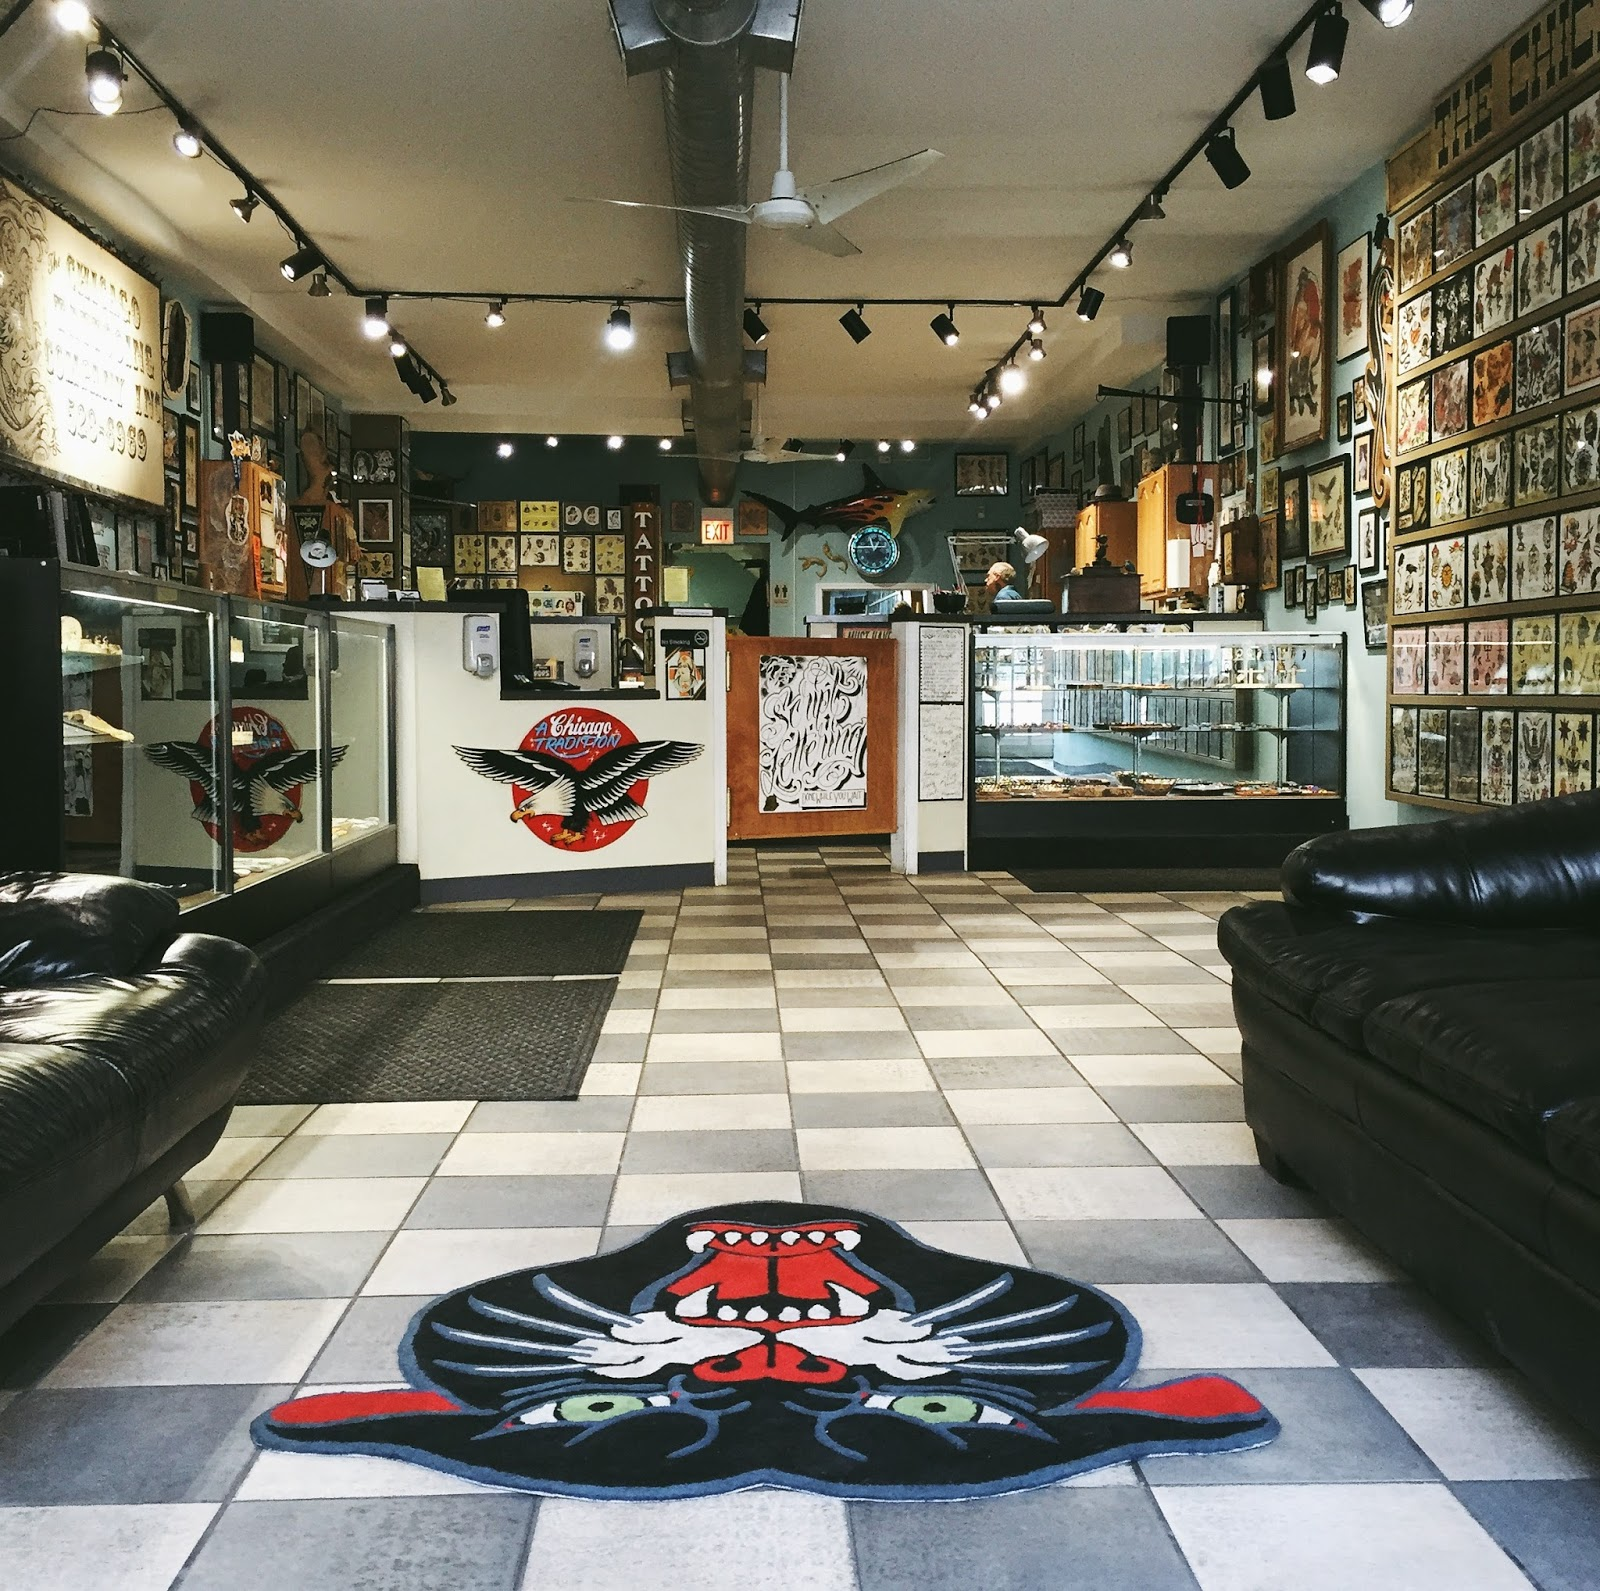 tattoo shops don penny etiquette expect faqs accidentally become person